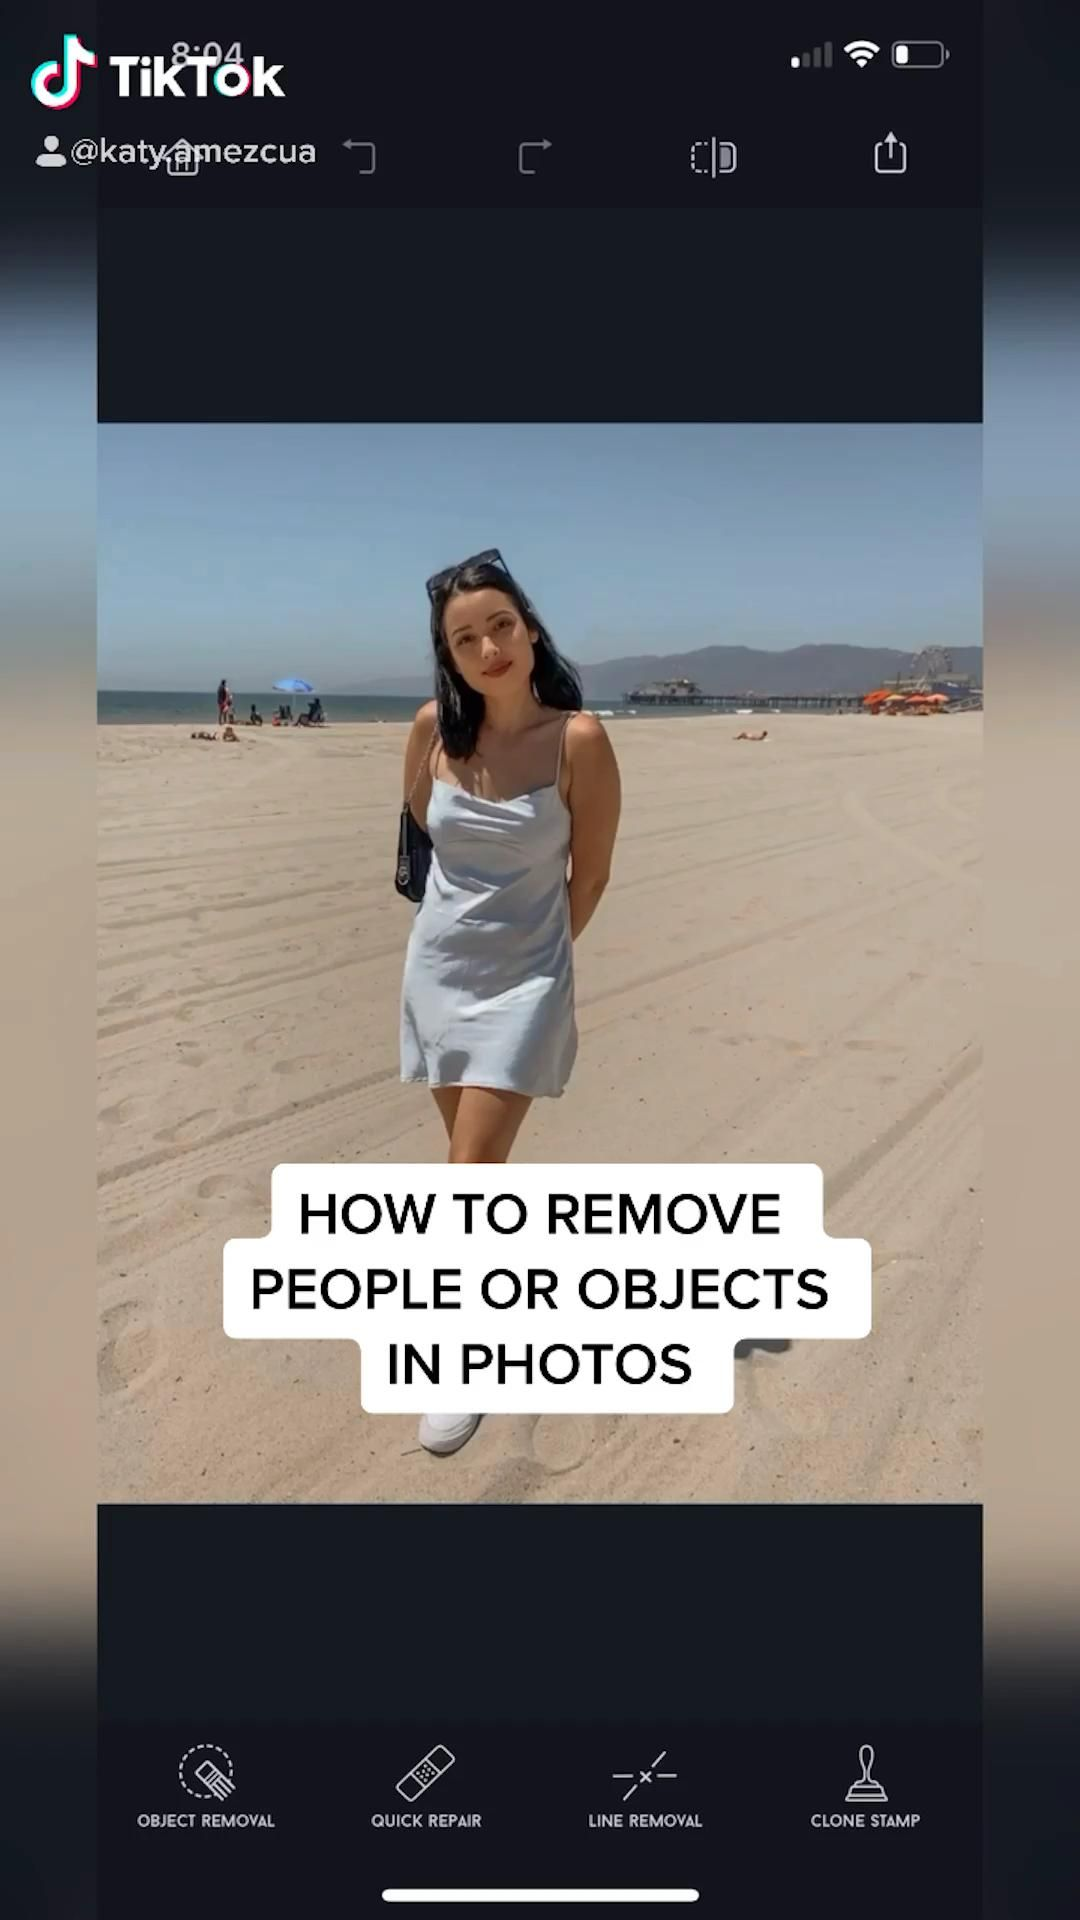 How To Remove Objects In Photos Video Instagram Photo Editing Photography Filters Photo